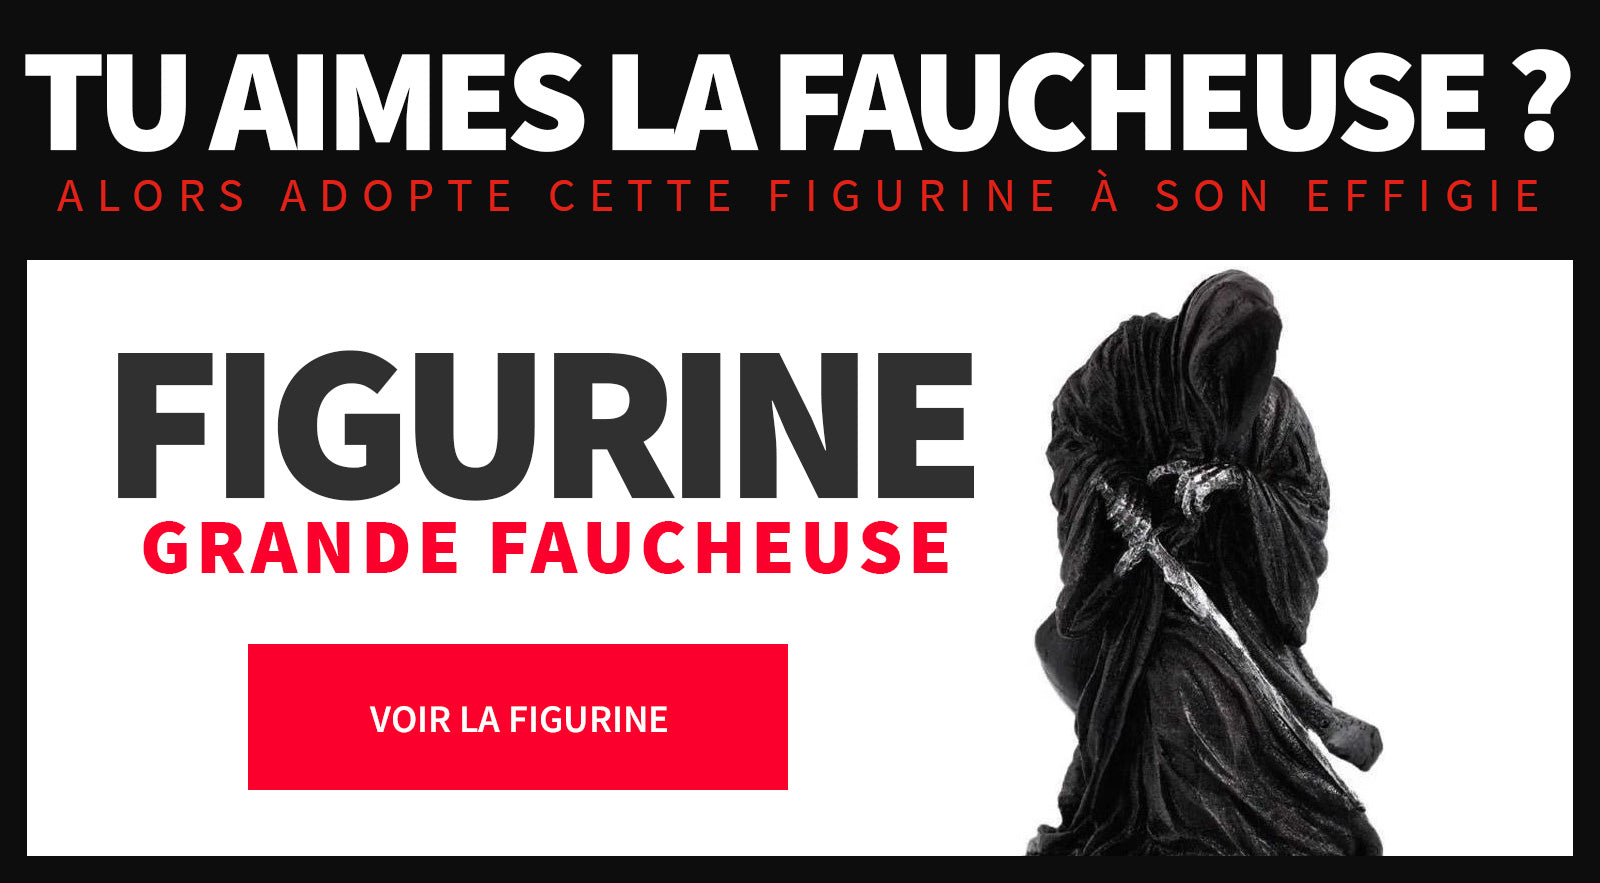 Figurine faucheuse